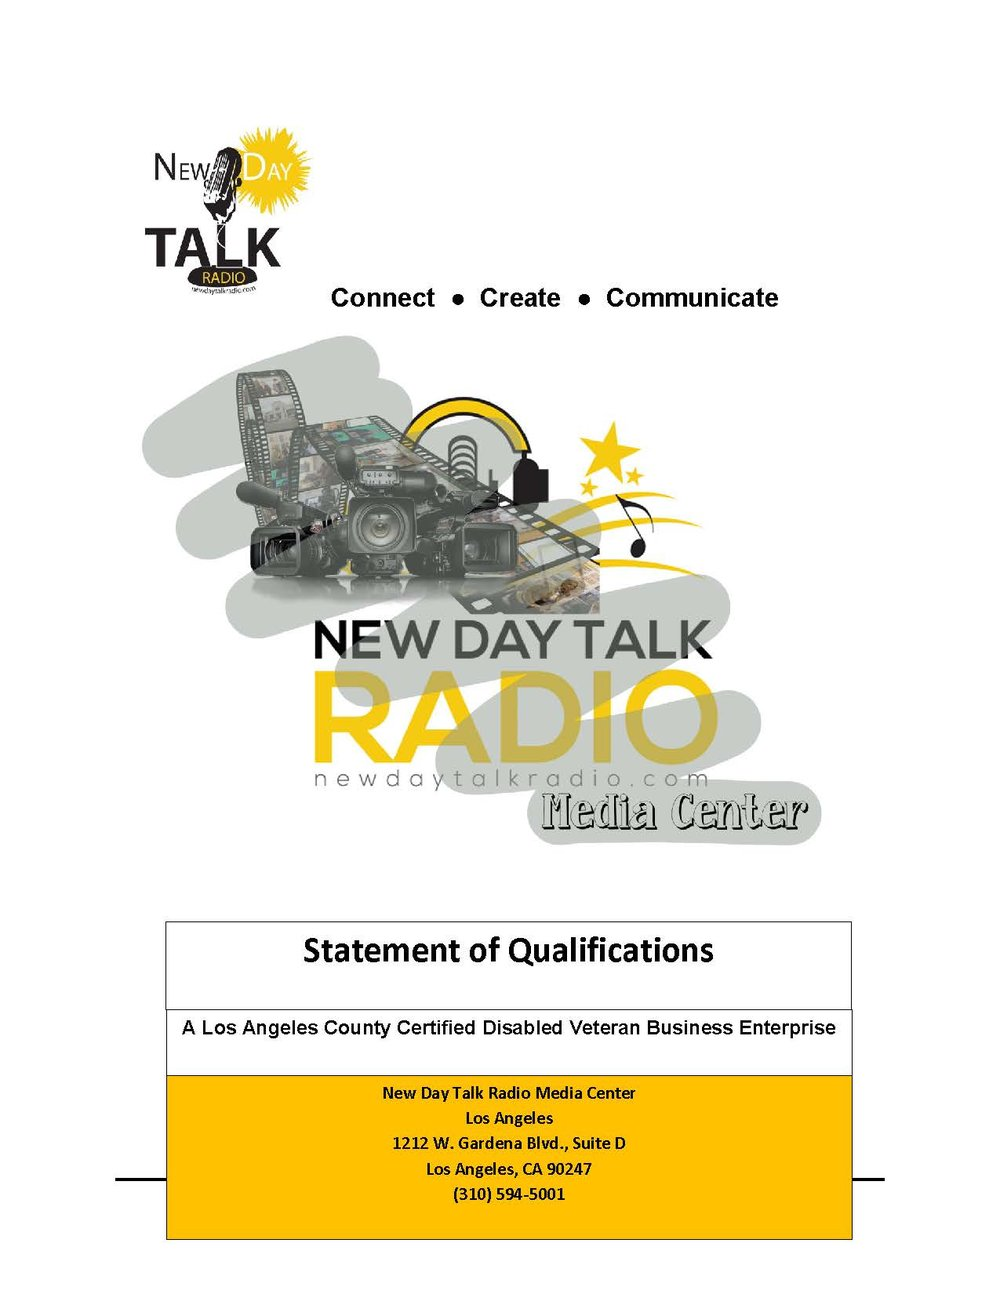 New Day Talk Radio Statement of Qualifications v3_Page_01.jpg